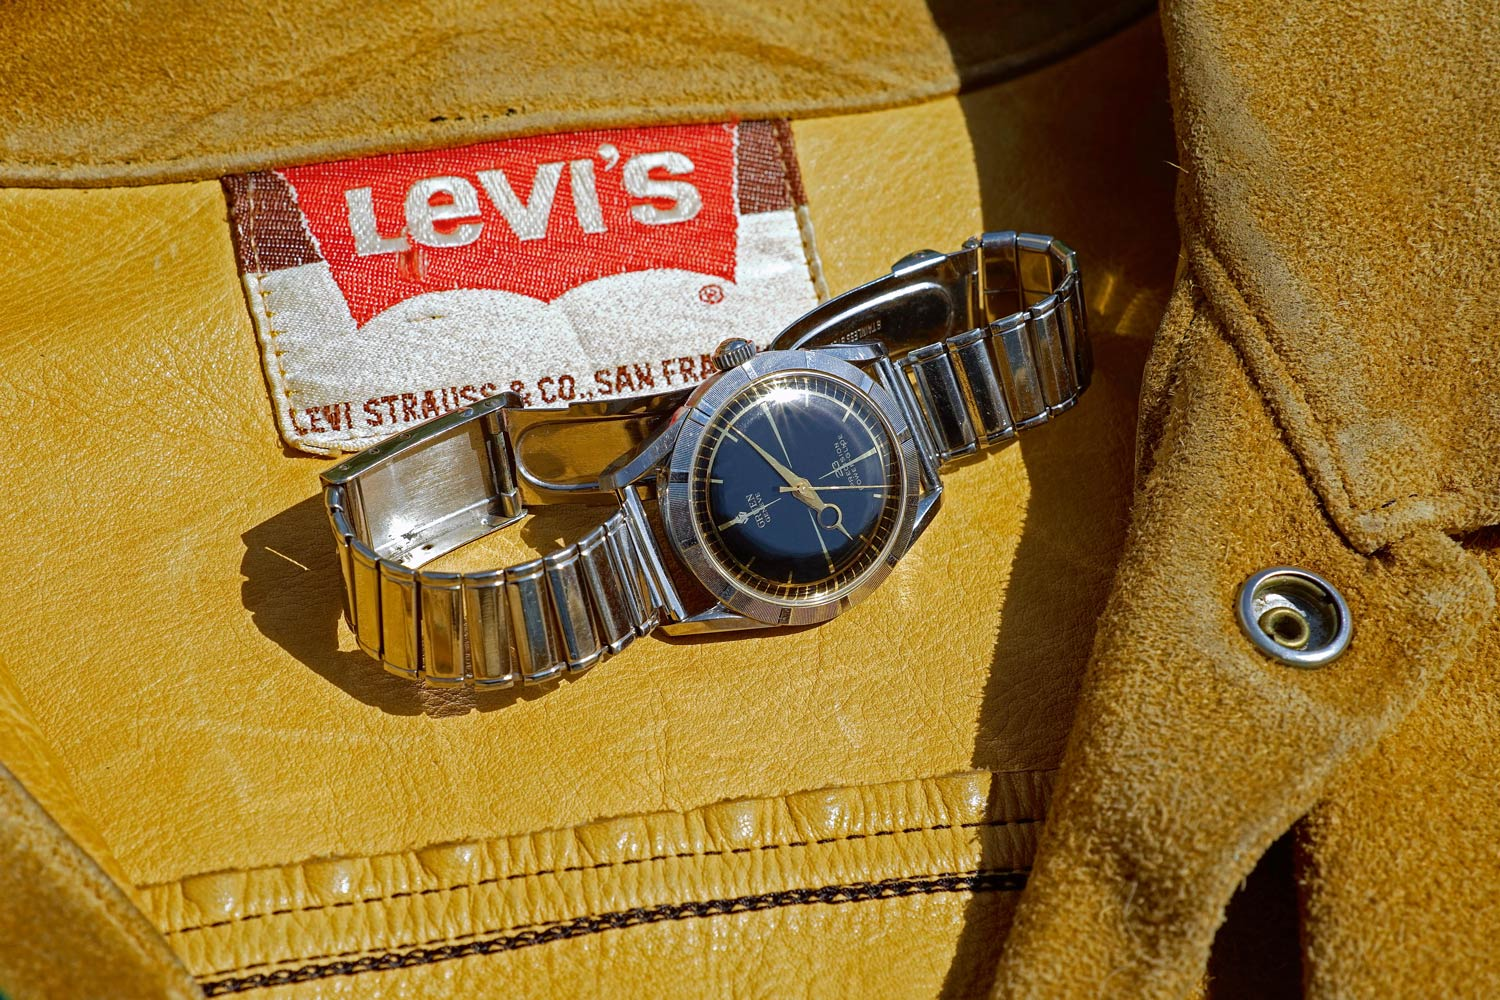 Steel self winding Gruen 23 Precision, Power-Glide with black gilt dial and ridged bezel, 1958. Vintage suede Levi's jacket, '60s